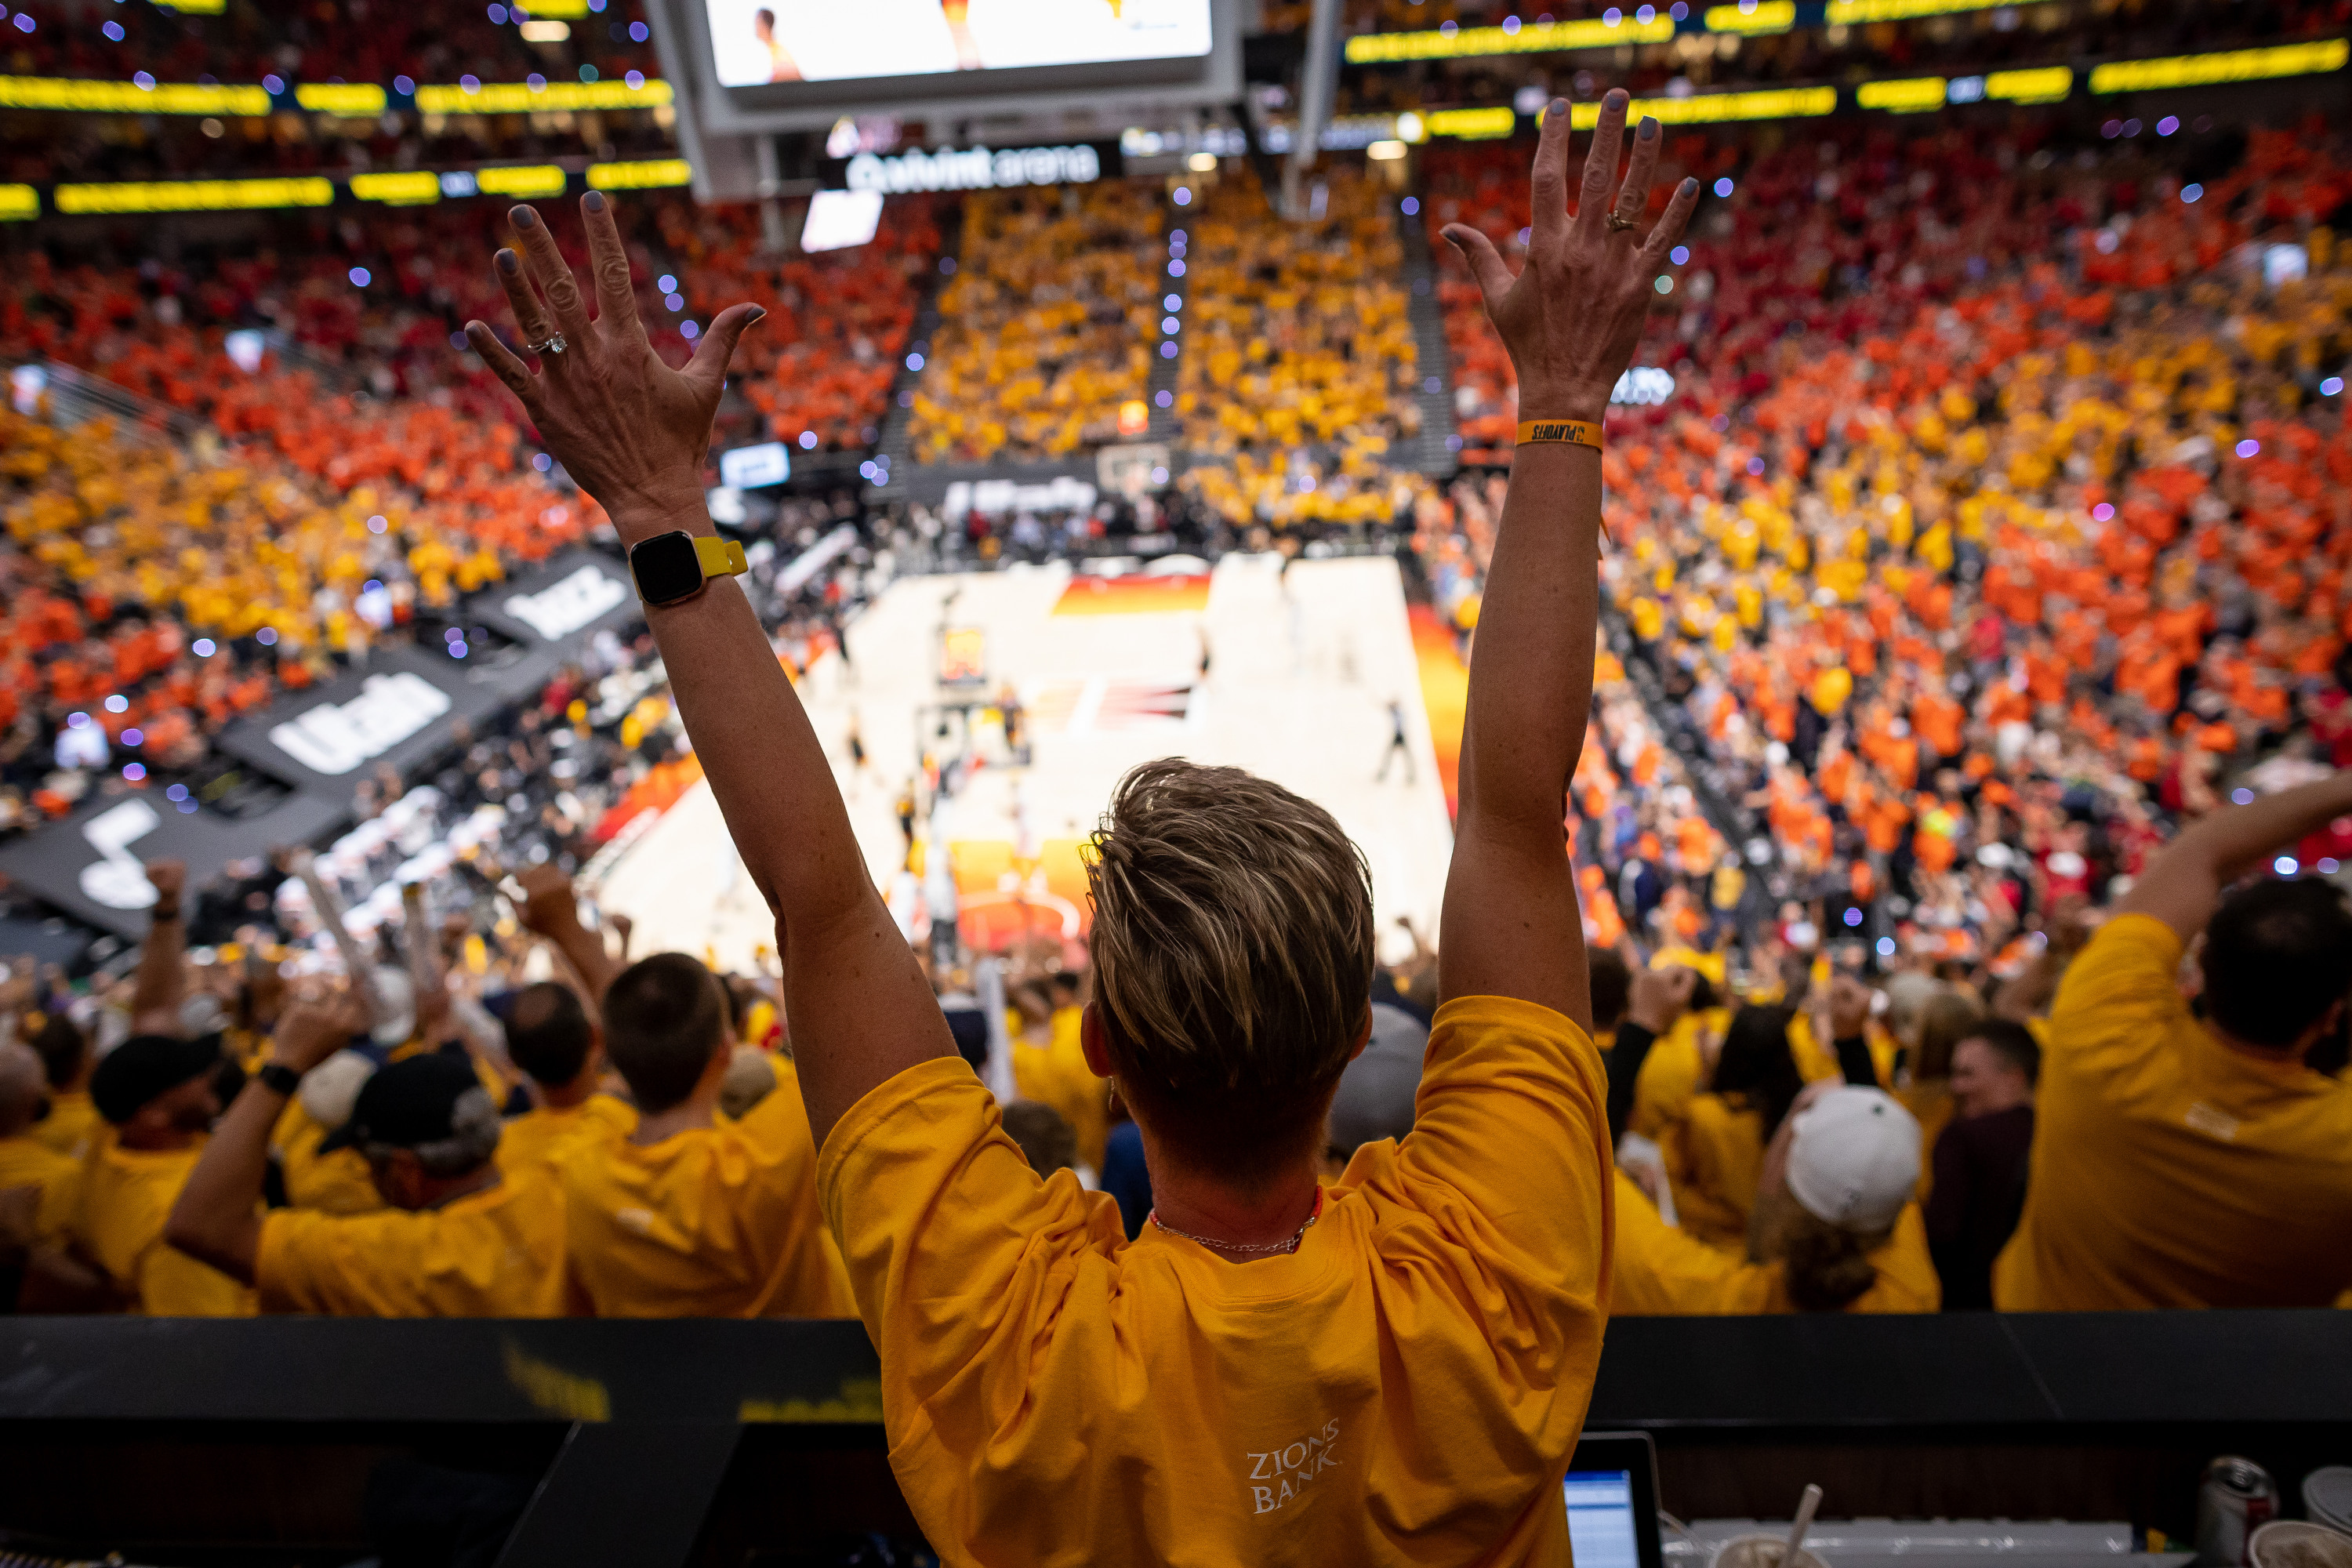 Fans react as the Utah Jazz score on the LA Clippers during game 1 of the Western Conference semifinals in Salt Lake City.